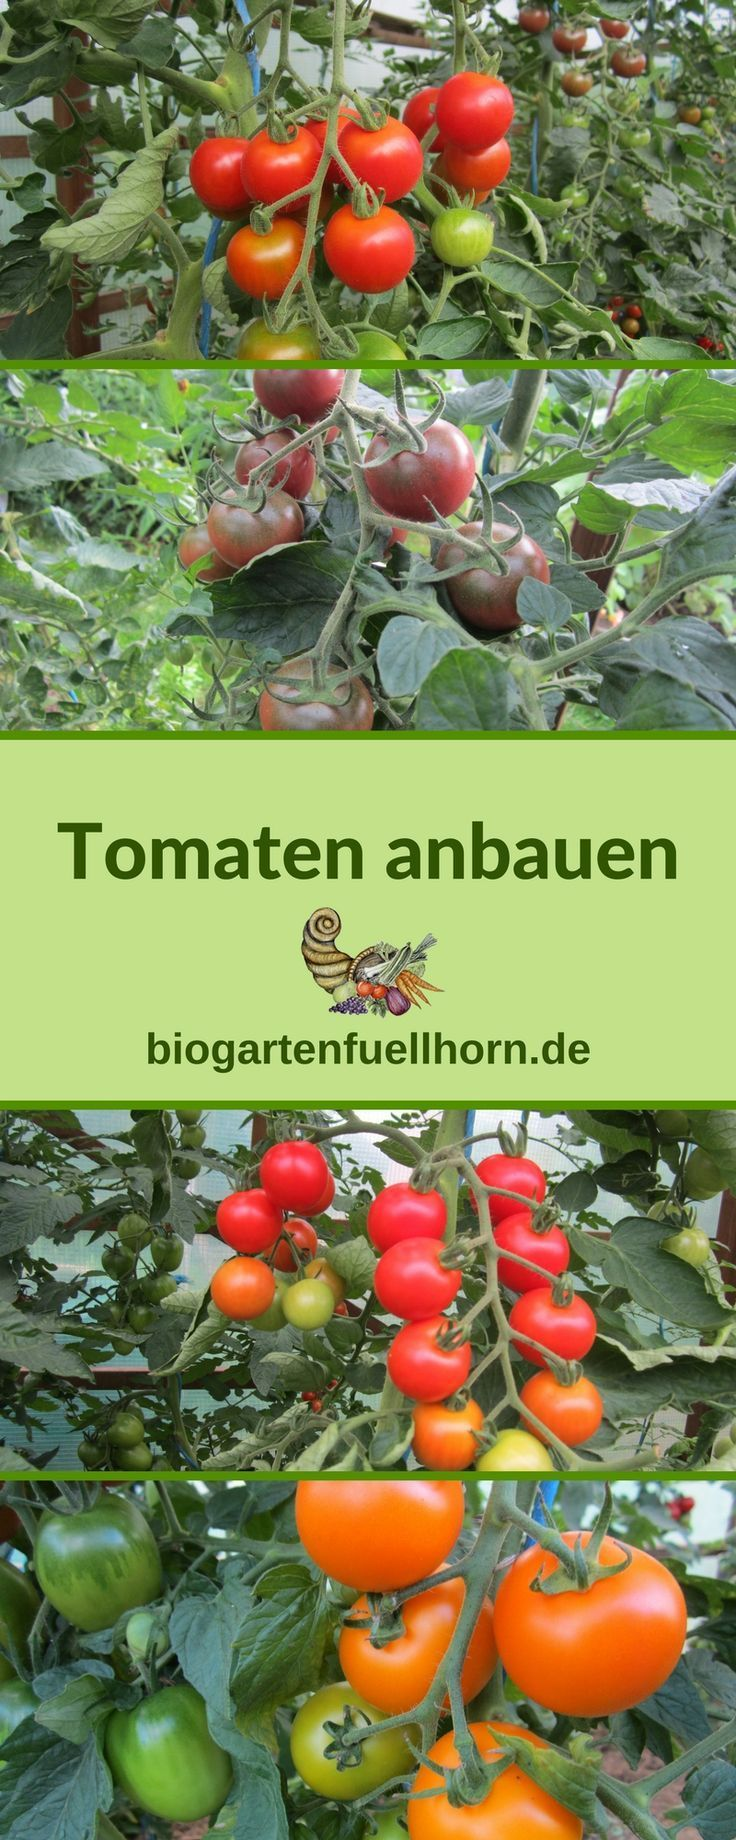 Here You Will Learn How To Dress Your Own Tomatoes Tomatoes Grow Garden Ideas Tomaten Pflanzen Tomatenanzucht Tomaten Garten